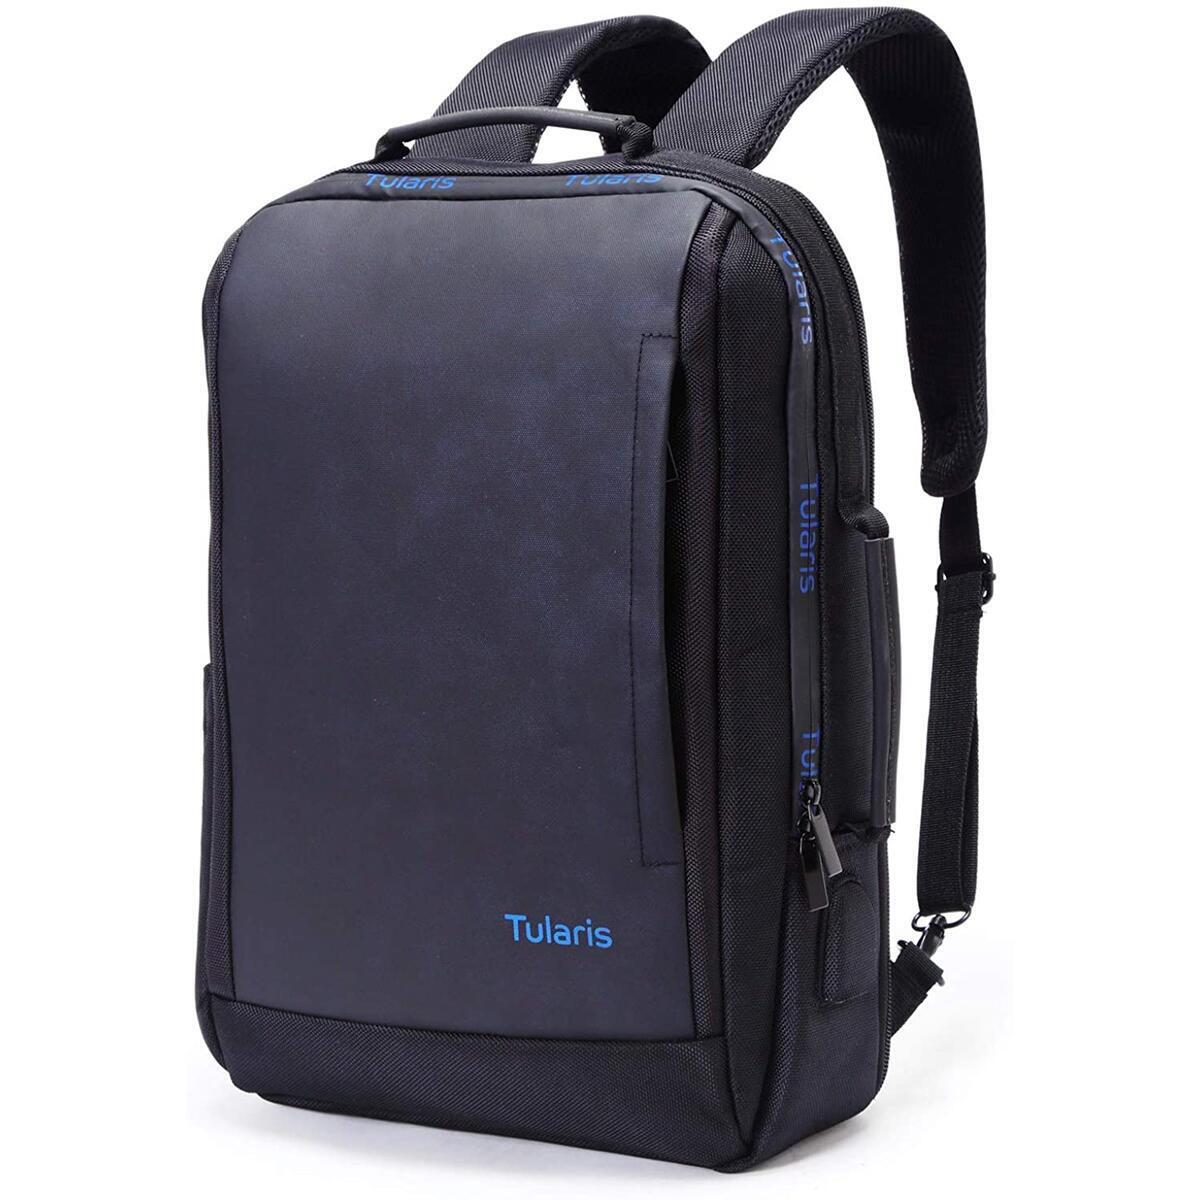 Travel Laptop Backpack Anti Theft Water Resistant Fits up to 17.3 inch Laptop with USB Charging Professional Slim Travel Business Work Backpack For Men Women - Best For Office, Traveling & Everyday Laptop Commuter Backpack  by TULARIS